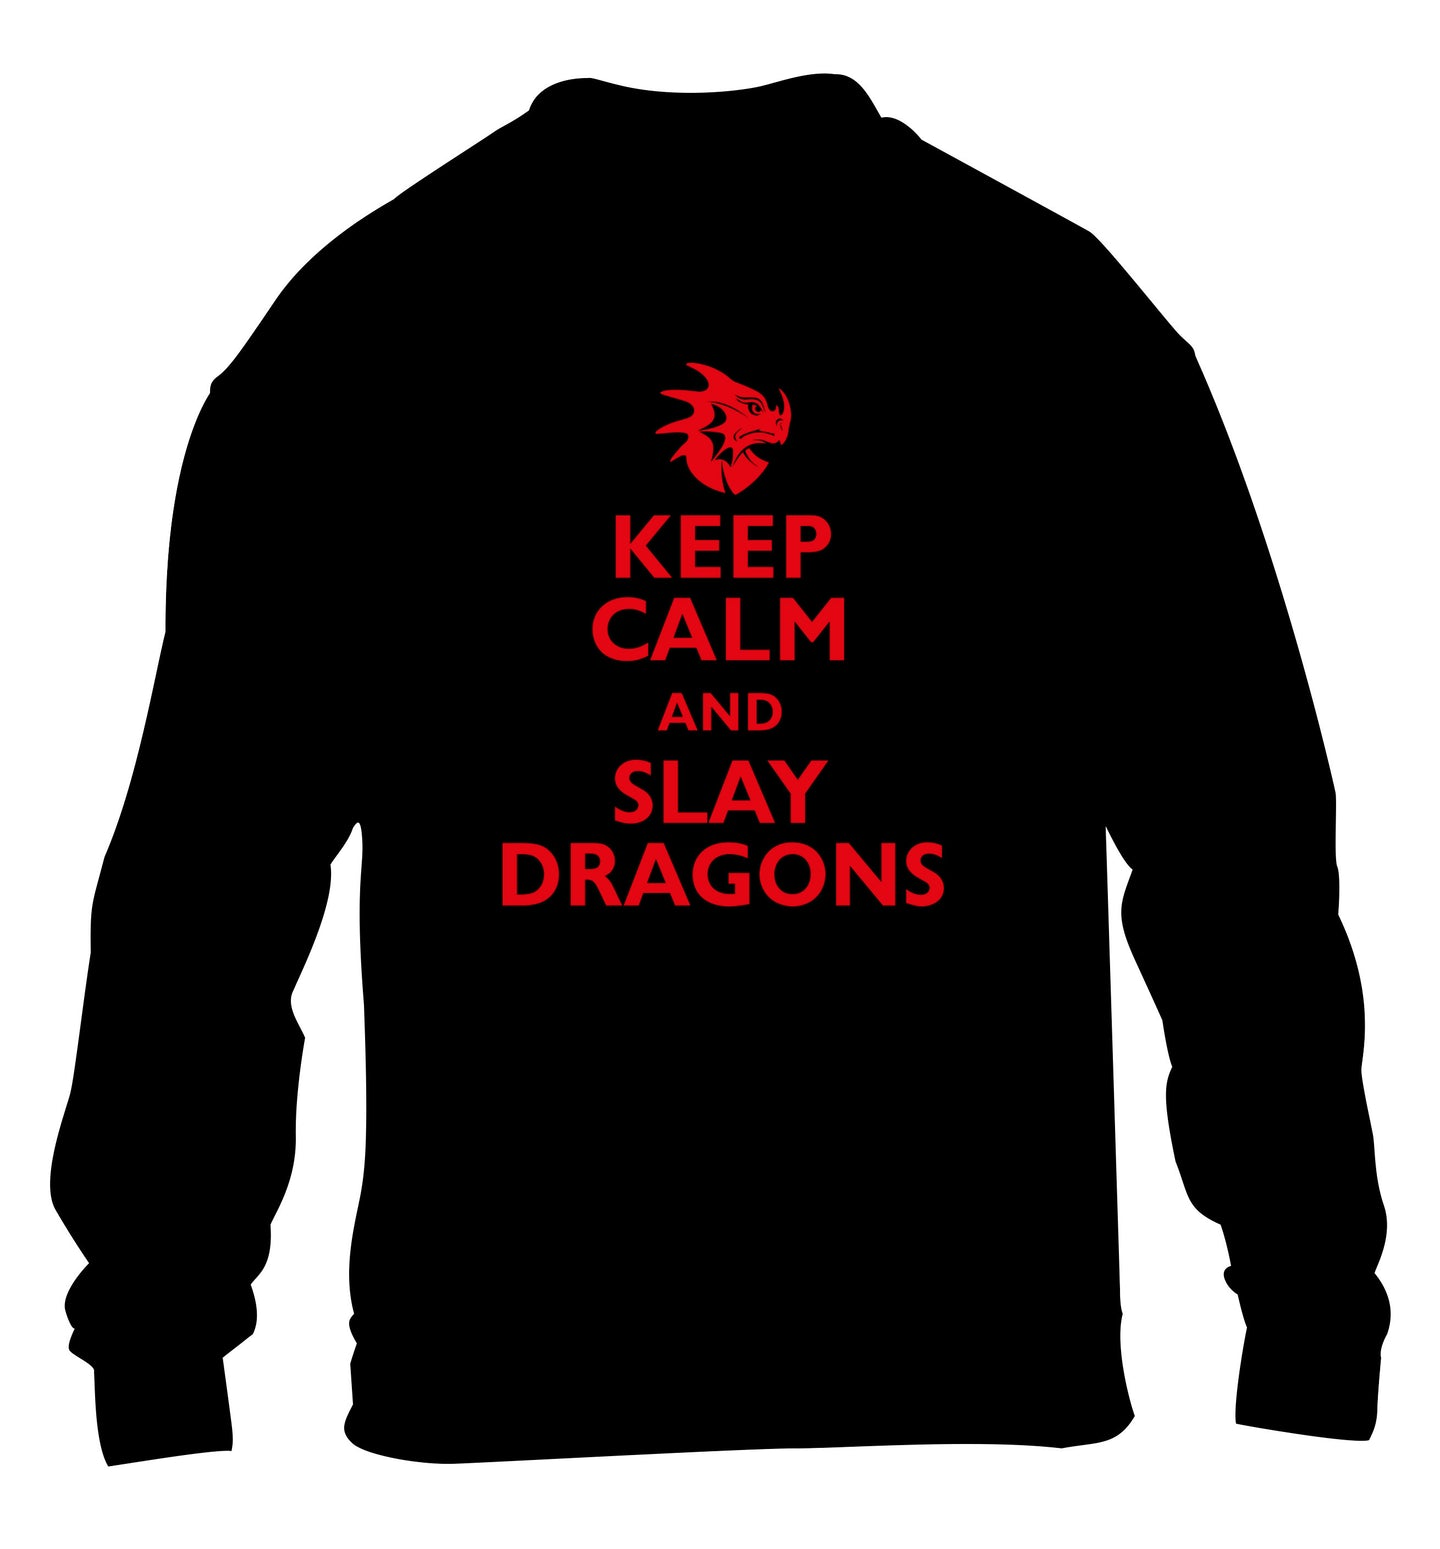 Keep calm and slay dragons children's black sweater 12-14 Years